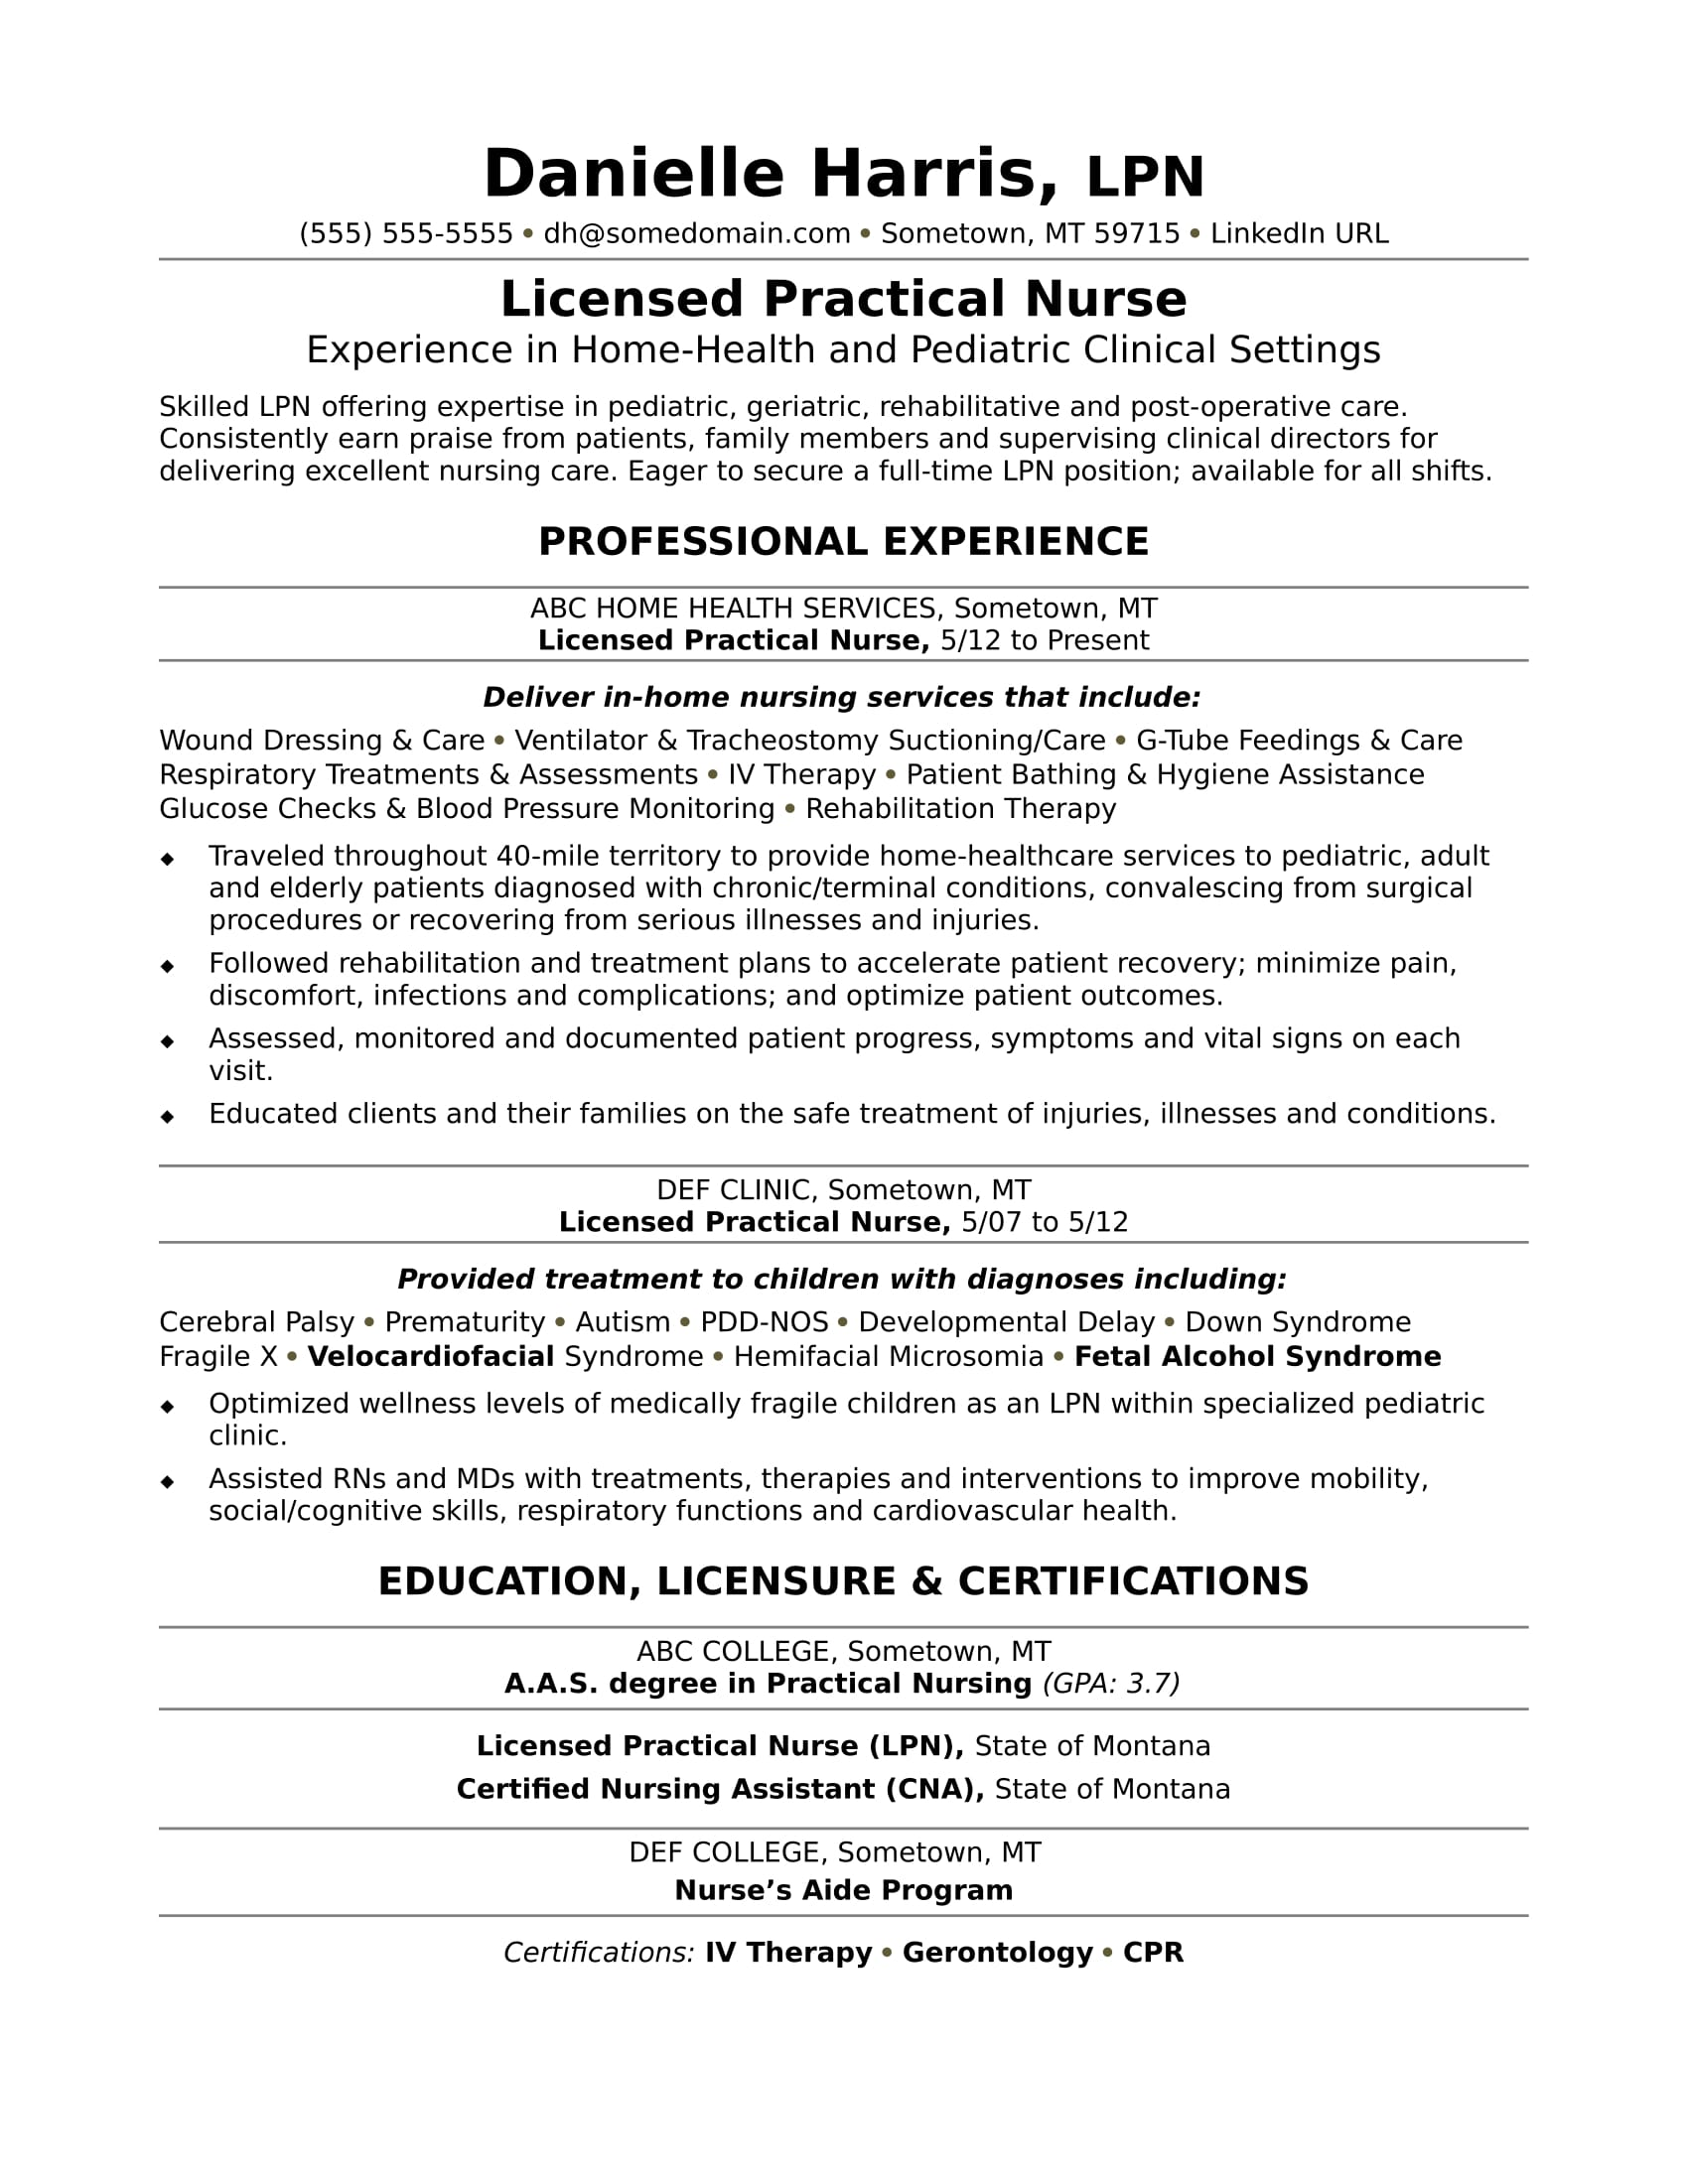 licensed practical nurse resume sample - Nurse Resume Sample